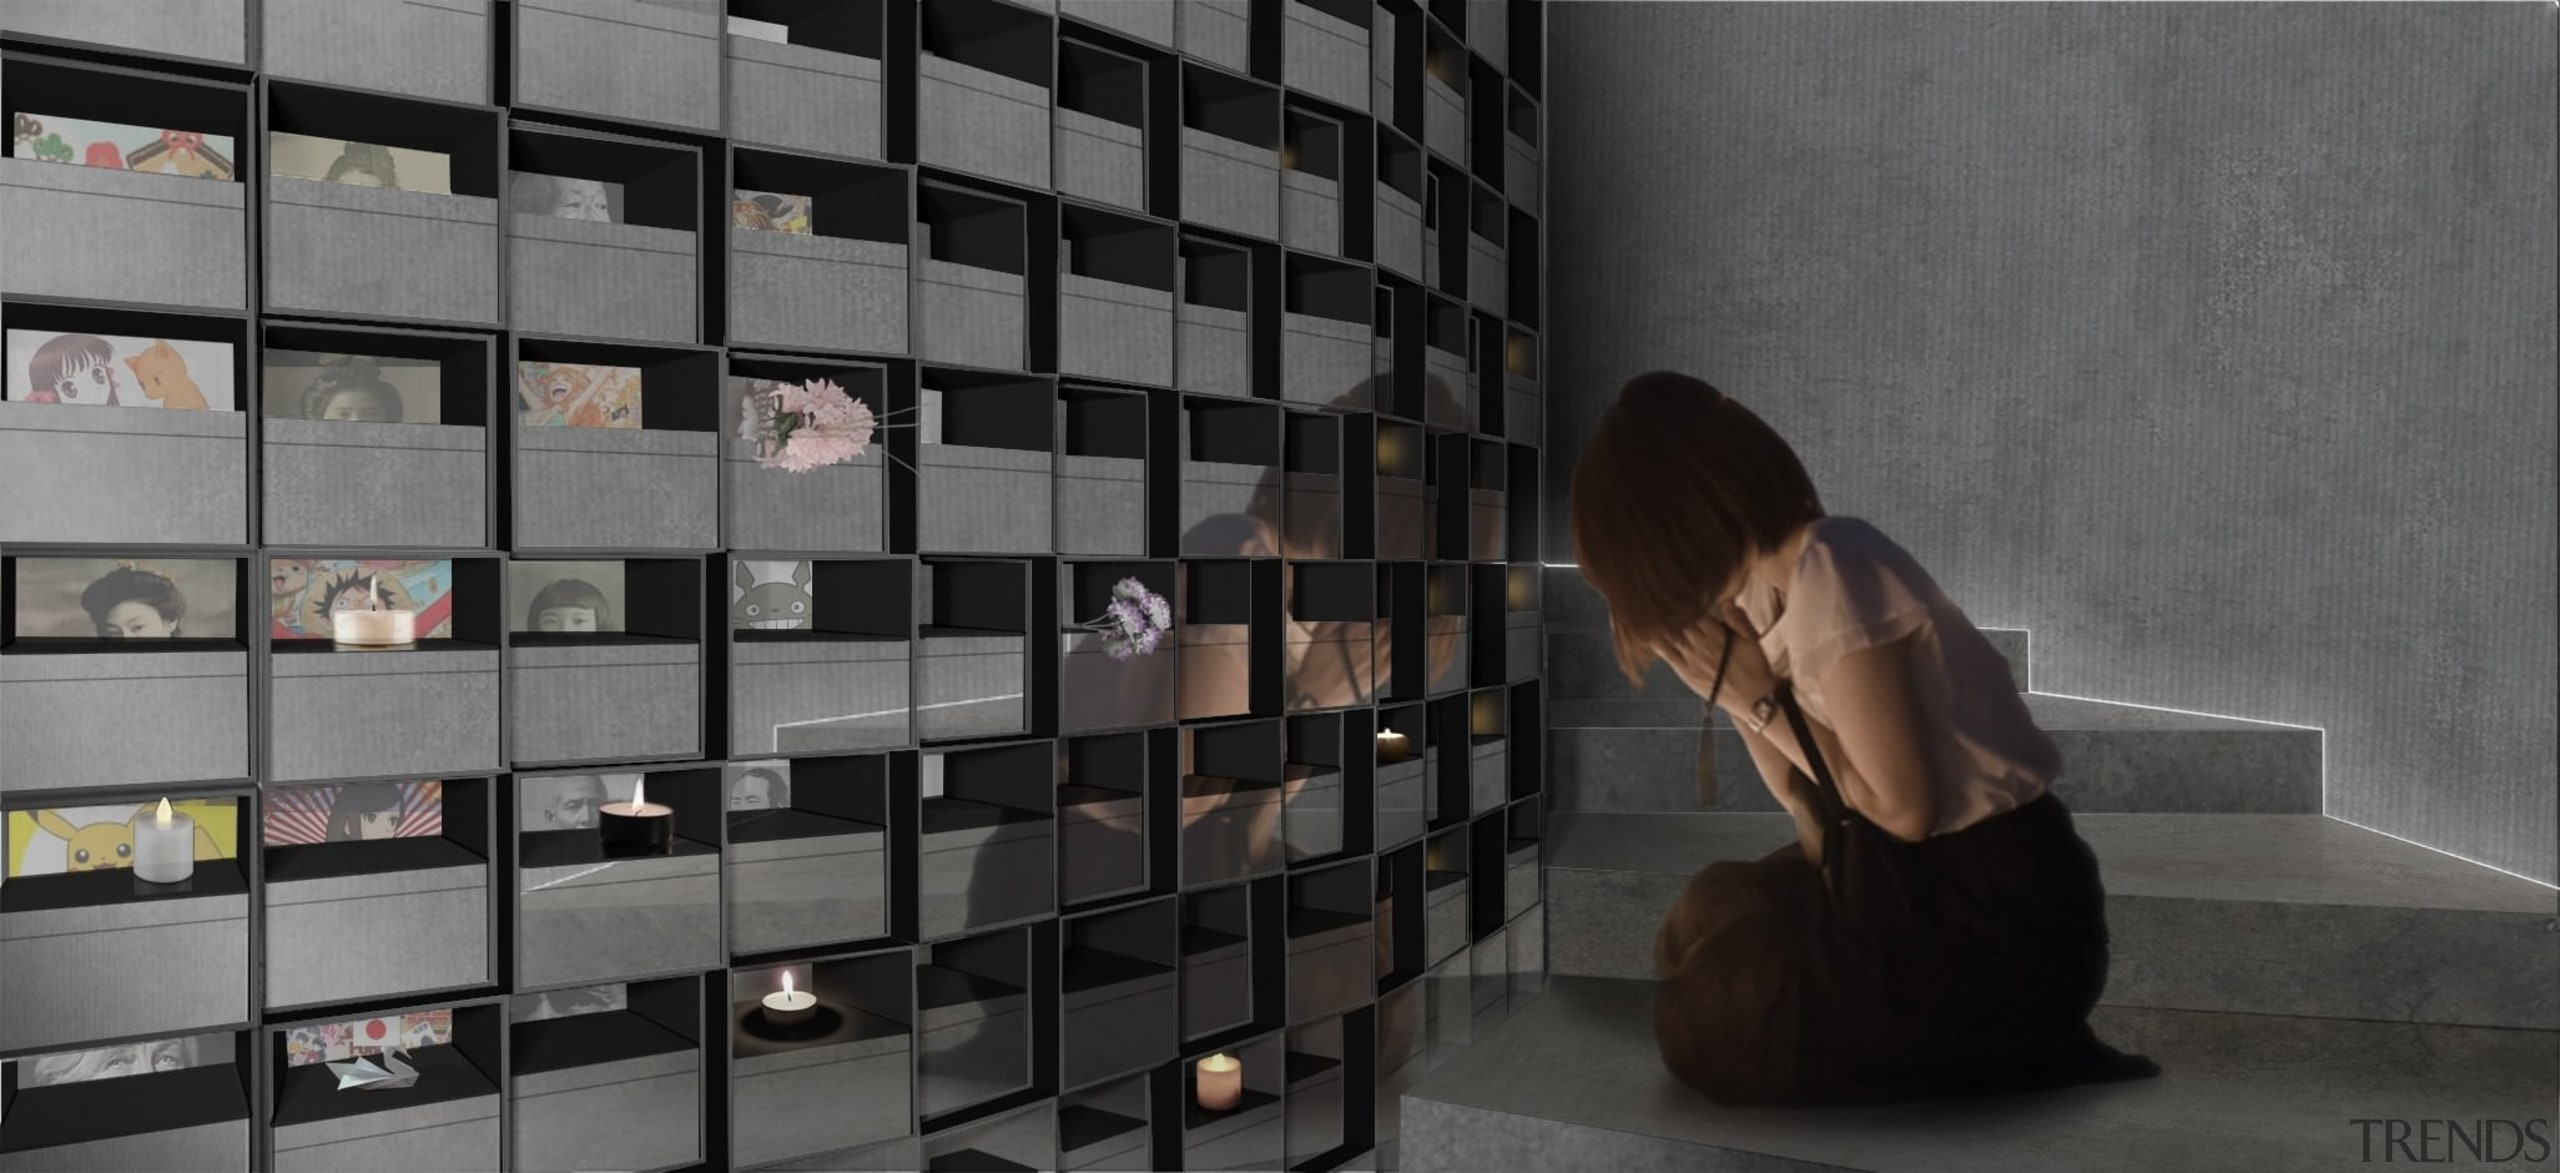 A place to reflect upon those who are floor, flooring, furniture, shelving, wall, gray, black